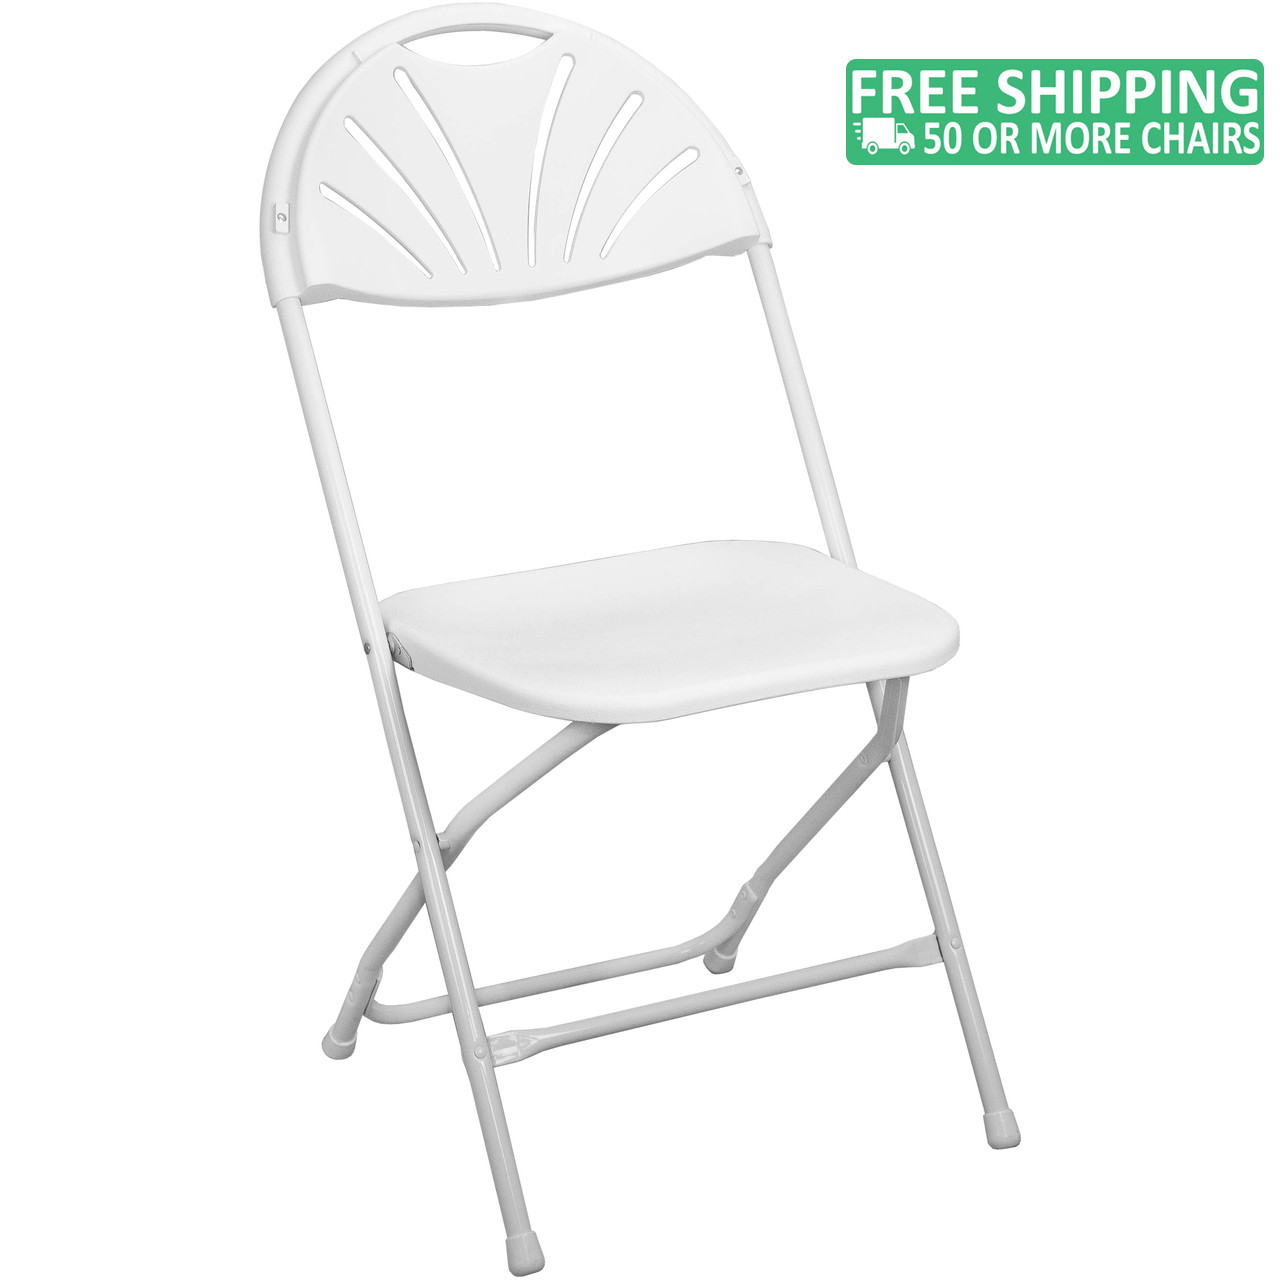 Lightweight White Fan Back Plastic Folding Chairs Foldable Chairs